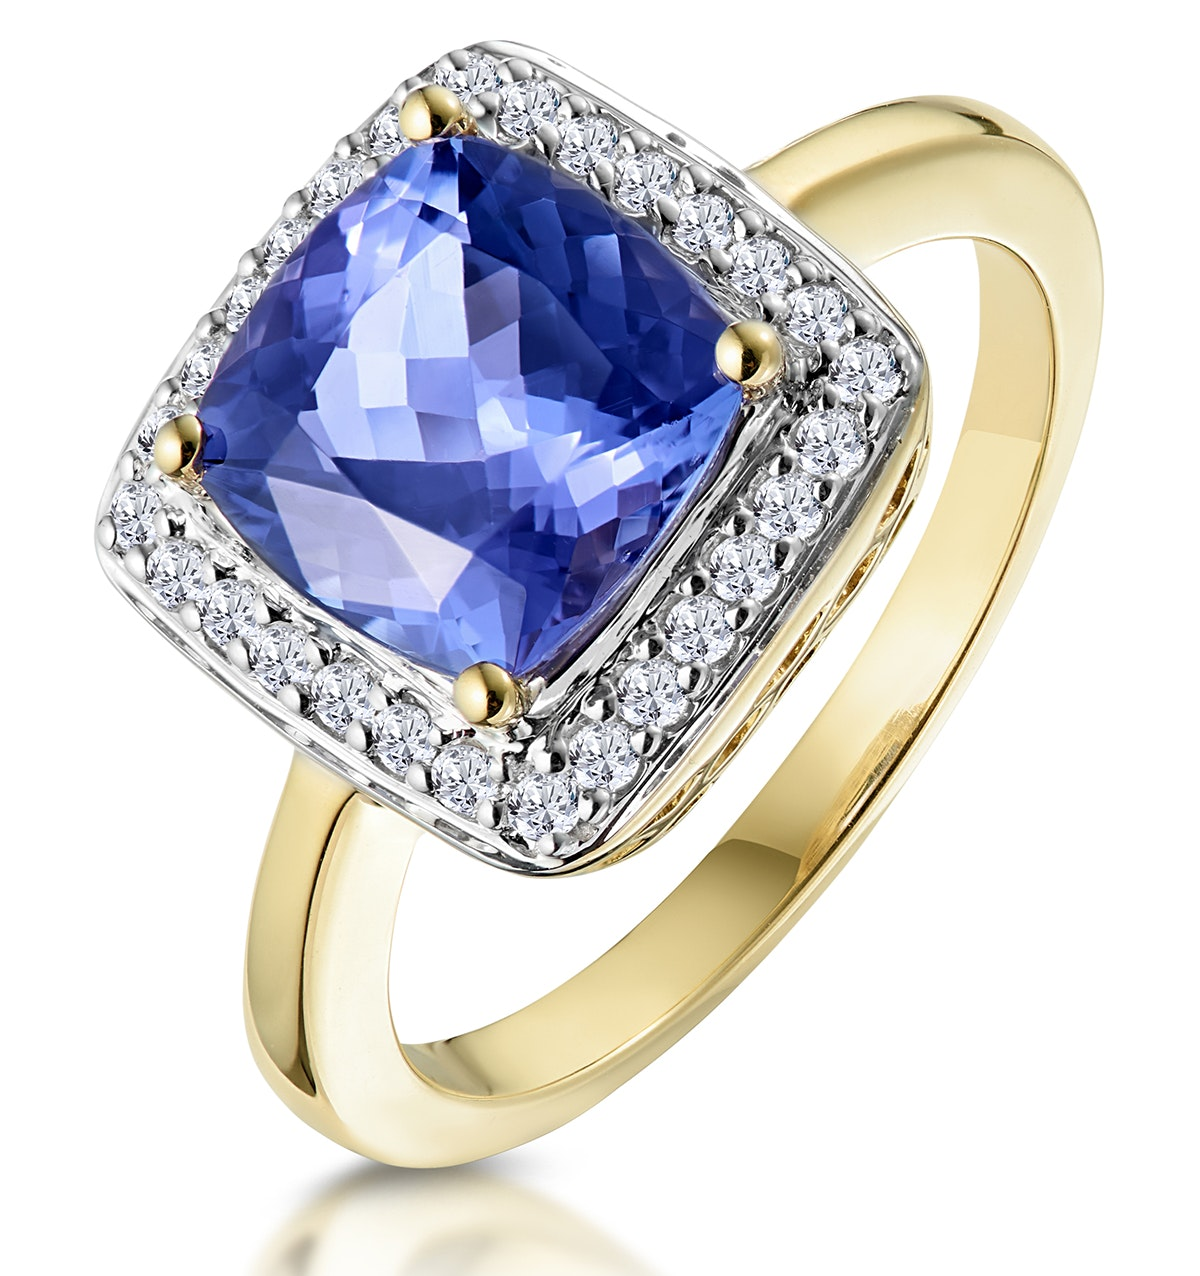 2ct Tanzanite and Diamond Statement Ring 18K Gold - Asteria Collection